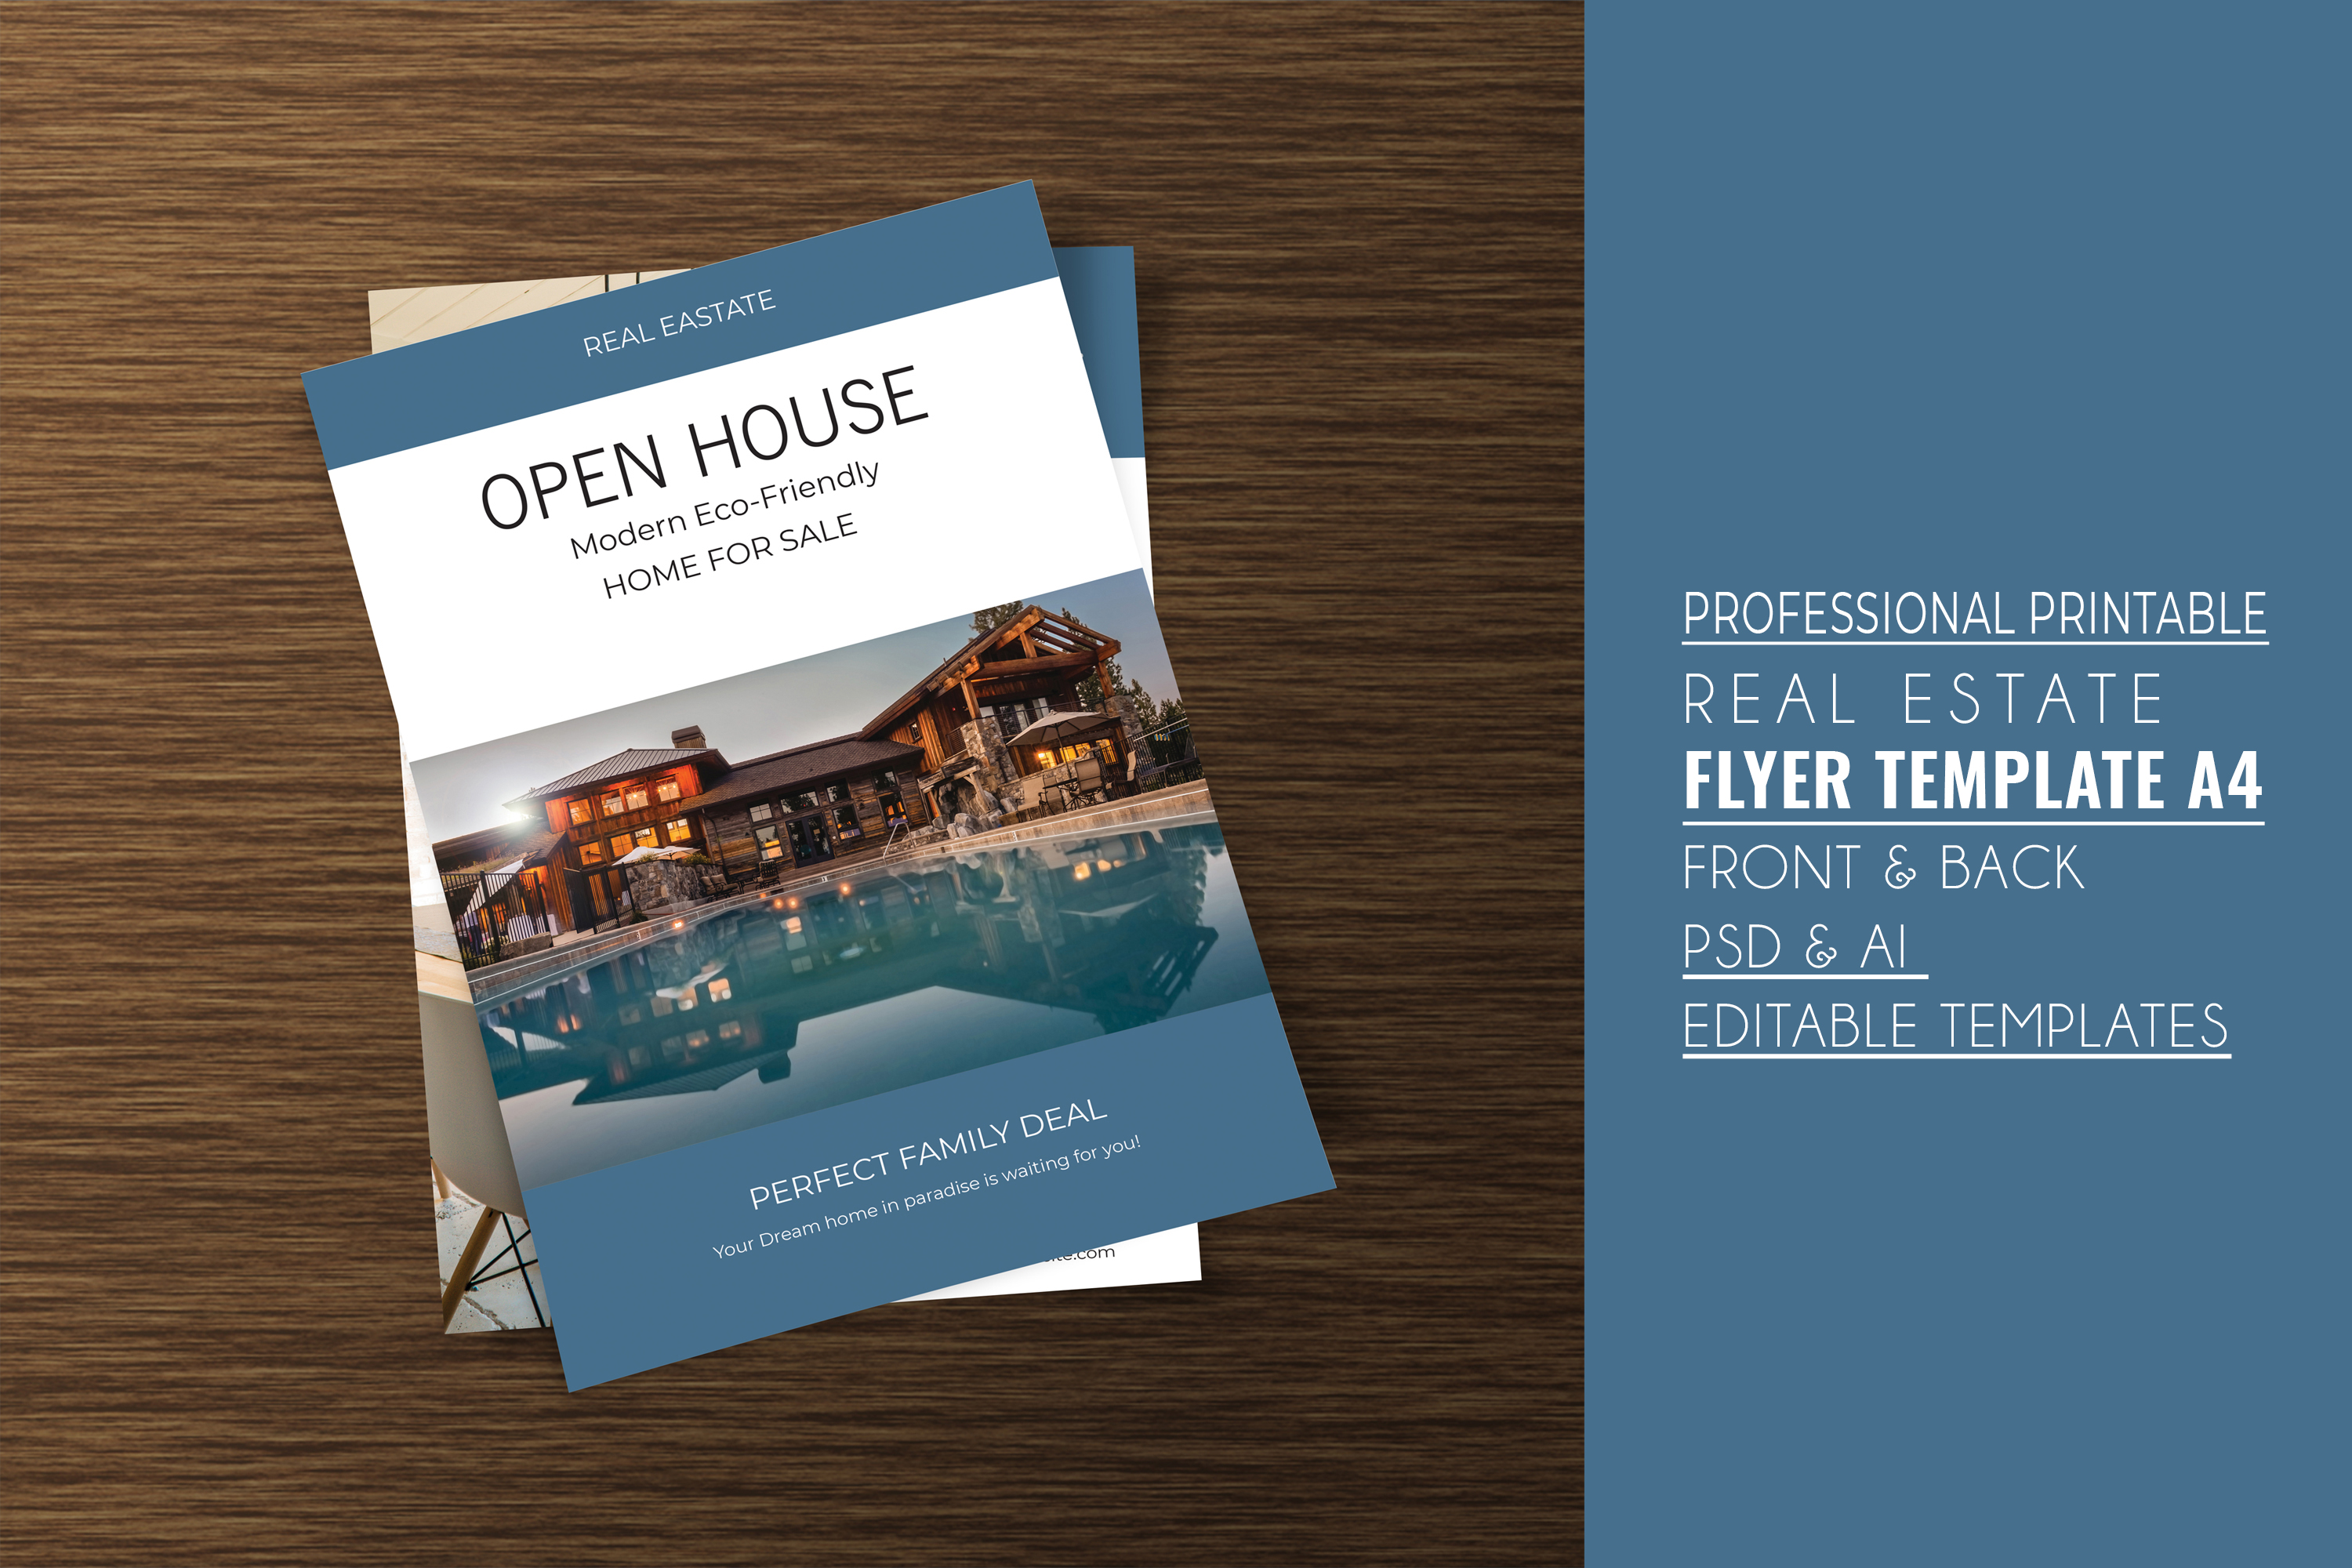 Professional Real Estate Flyer A4 - Printable Templates example image 4